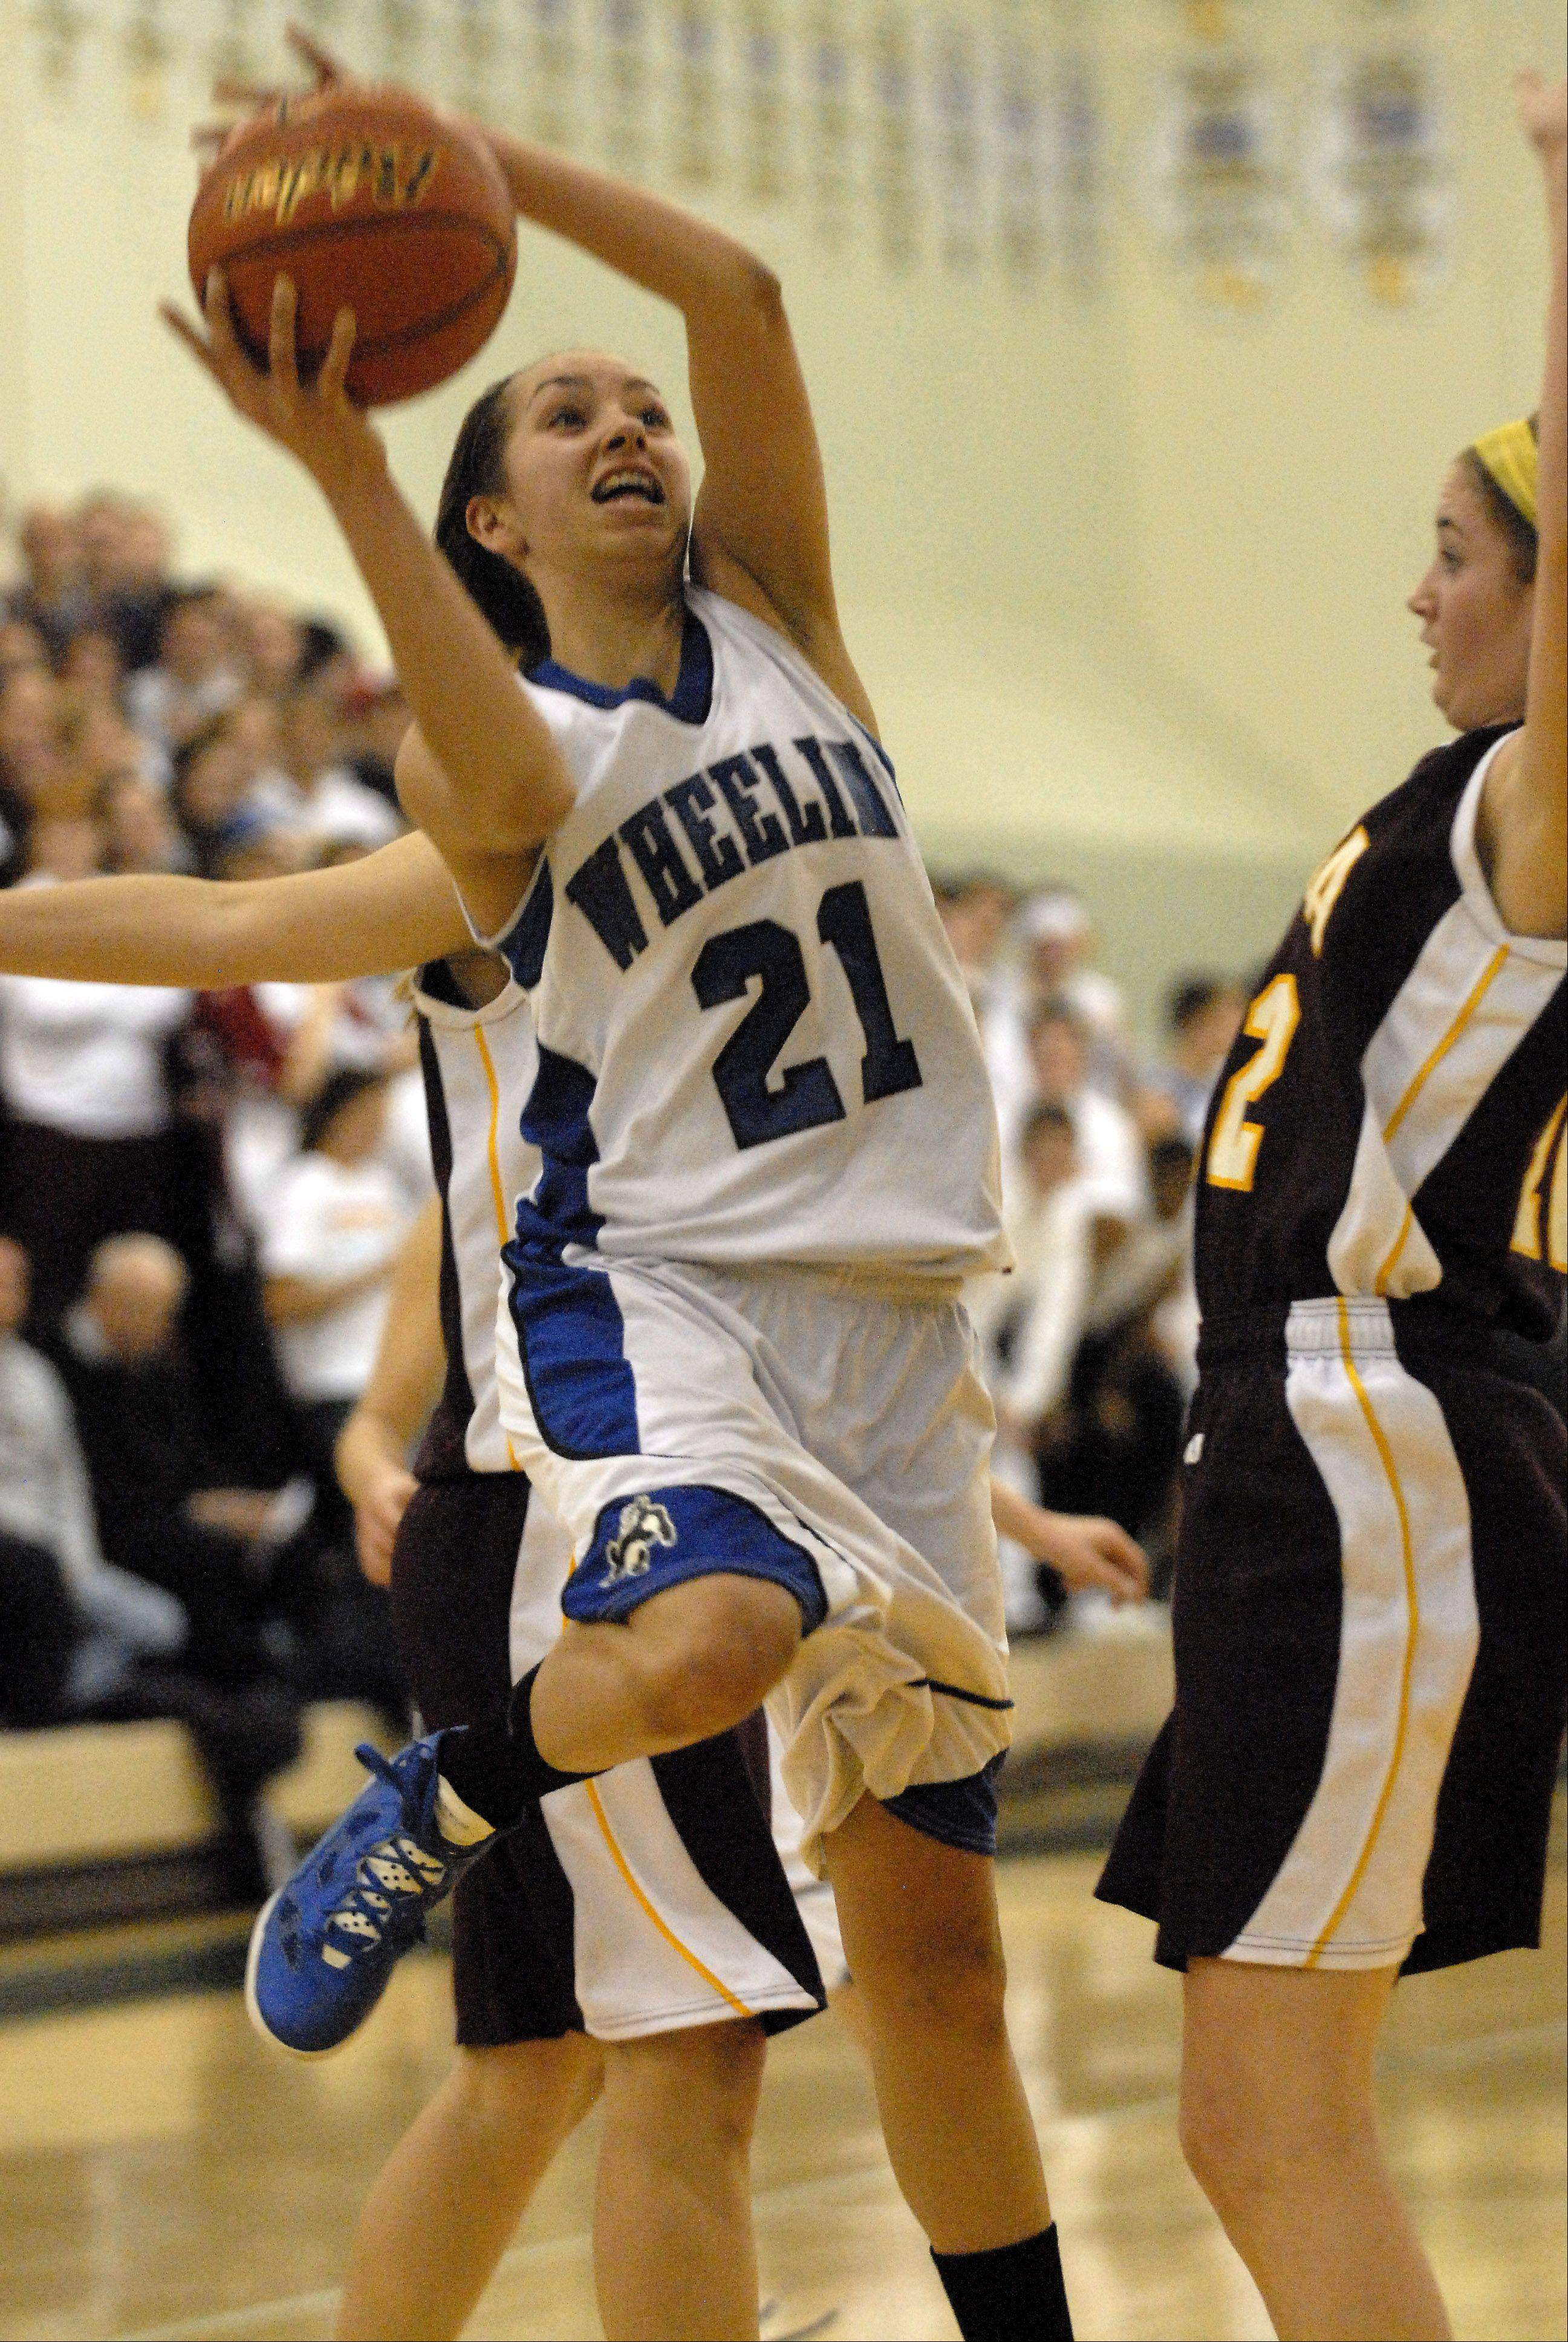 Wheeling's Deanna Kuzmanic puts up a shot against Loyola's Maggie Nick.